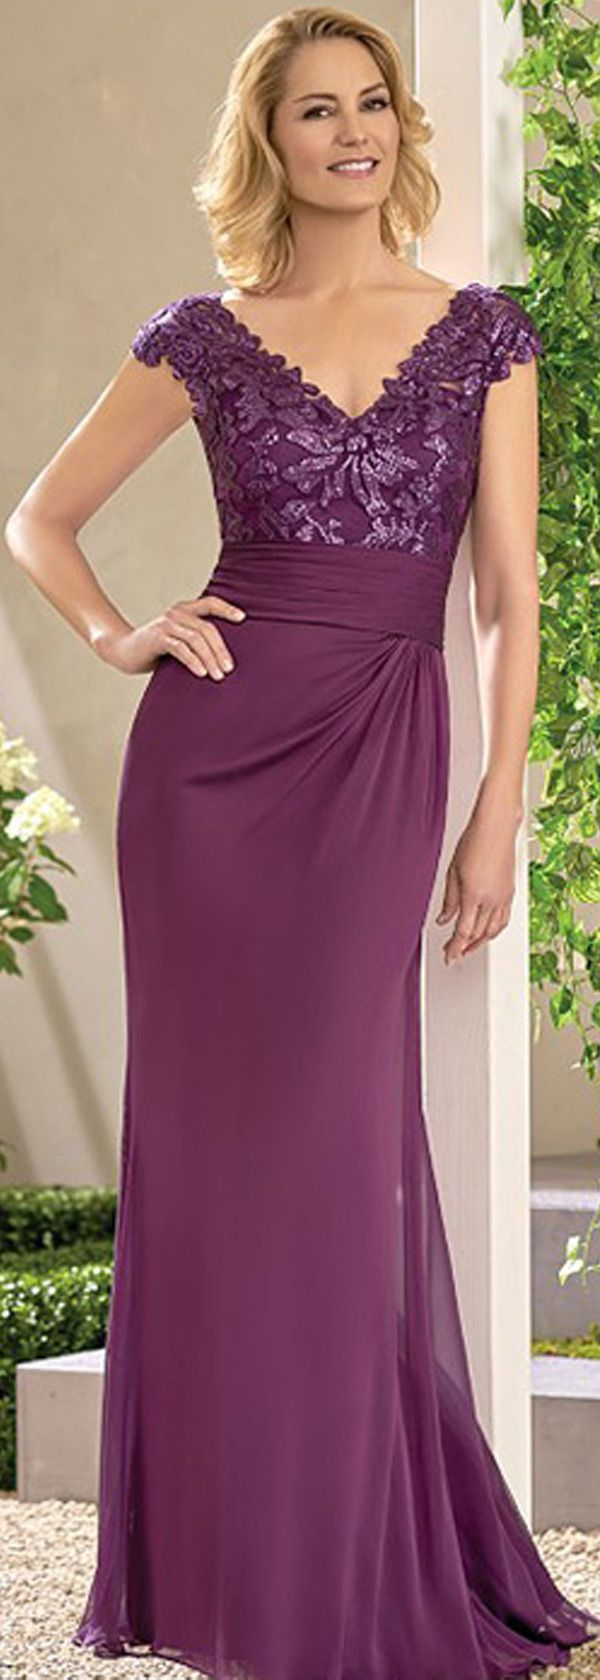 Elegant Chiffon V-neck Neckline Sheath Mother Of The Bride Dresses With Lace Appliques